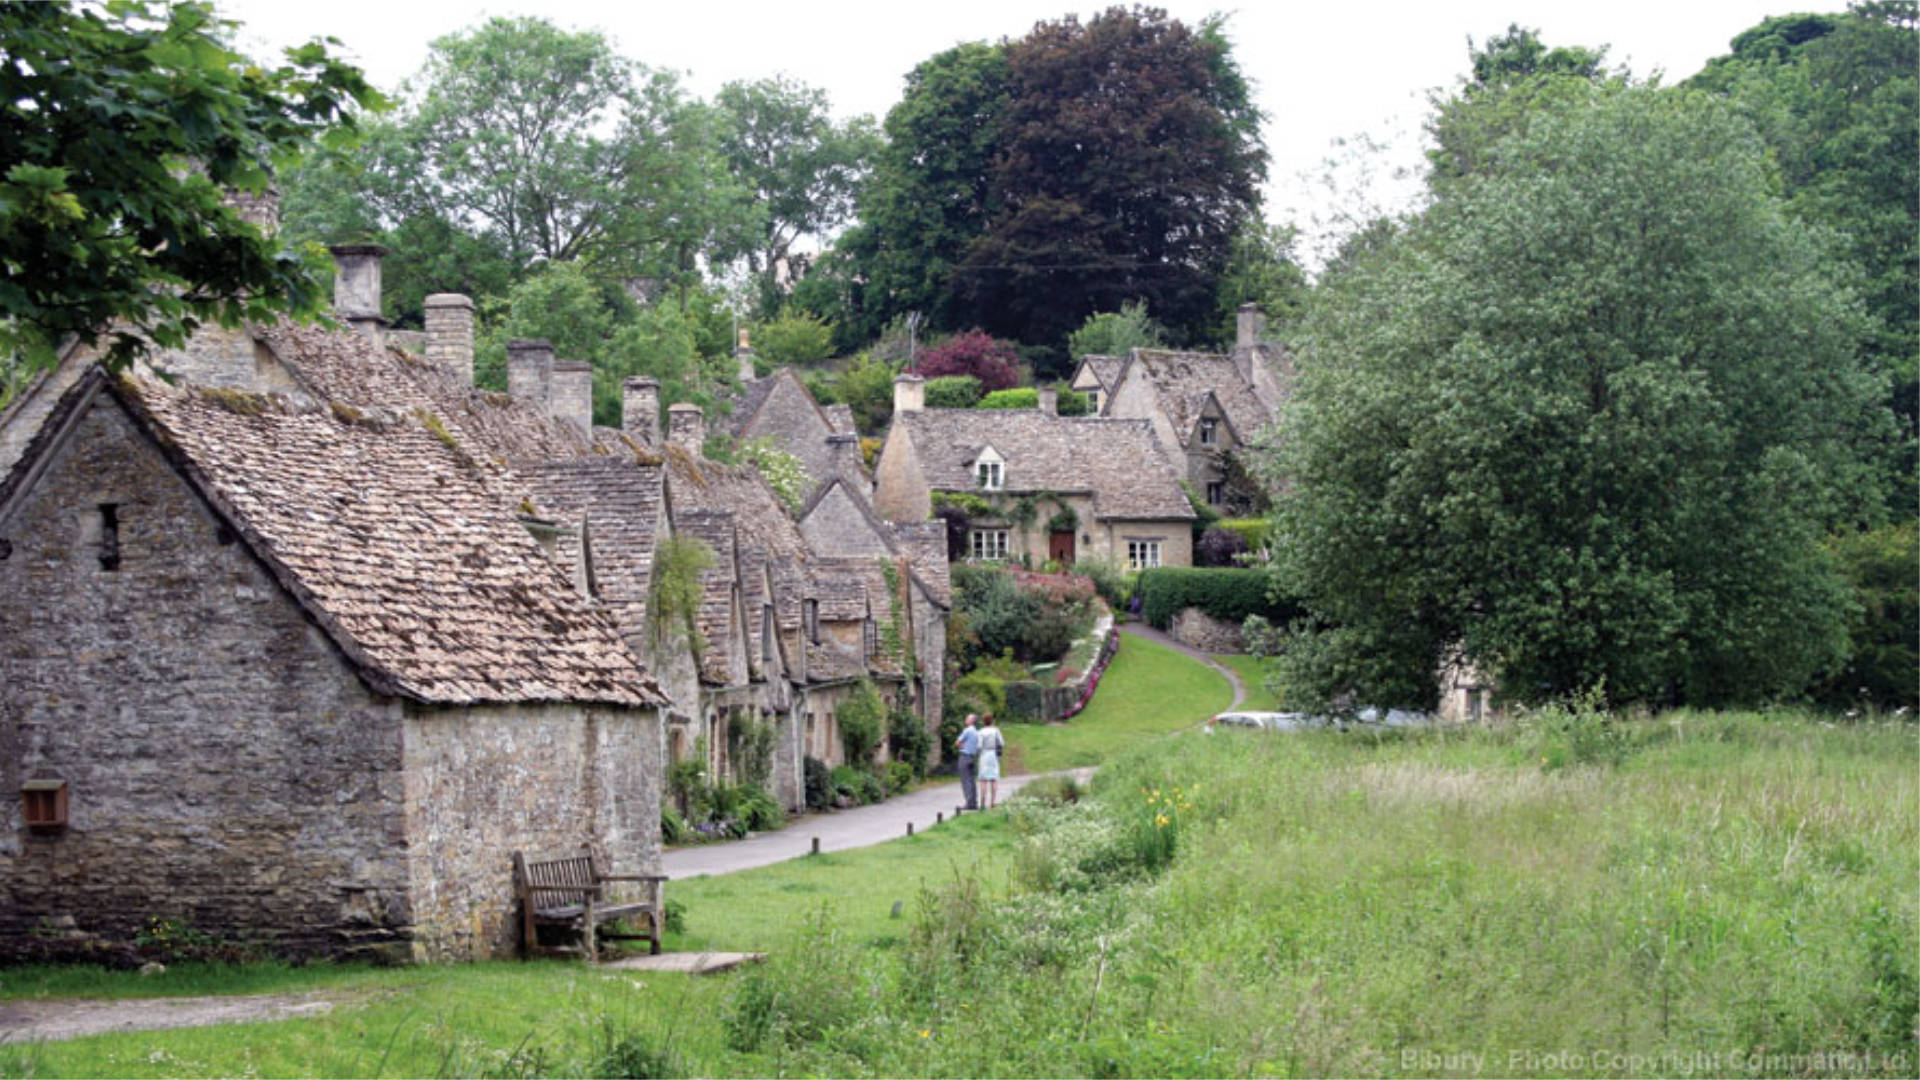 Photo of the Cotswold village of Bibury, a short drive from Cirencester